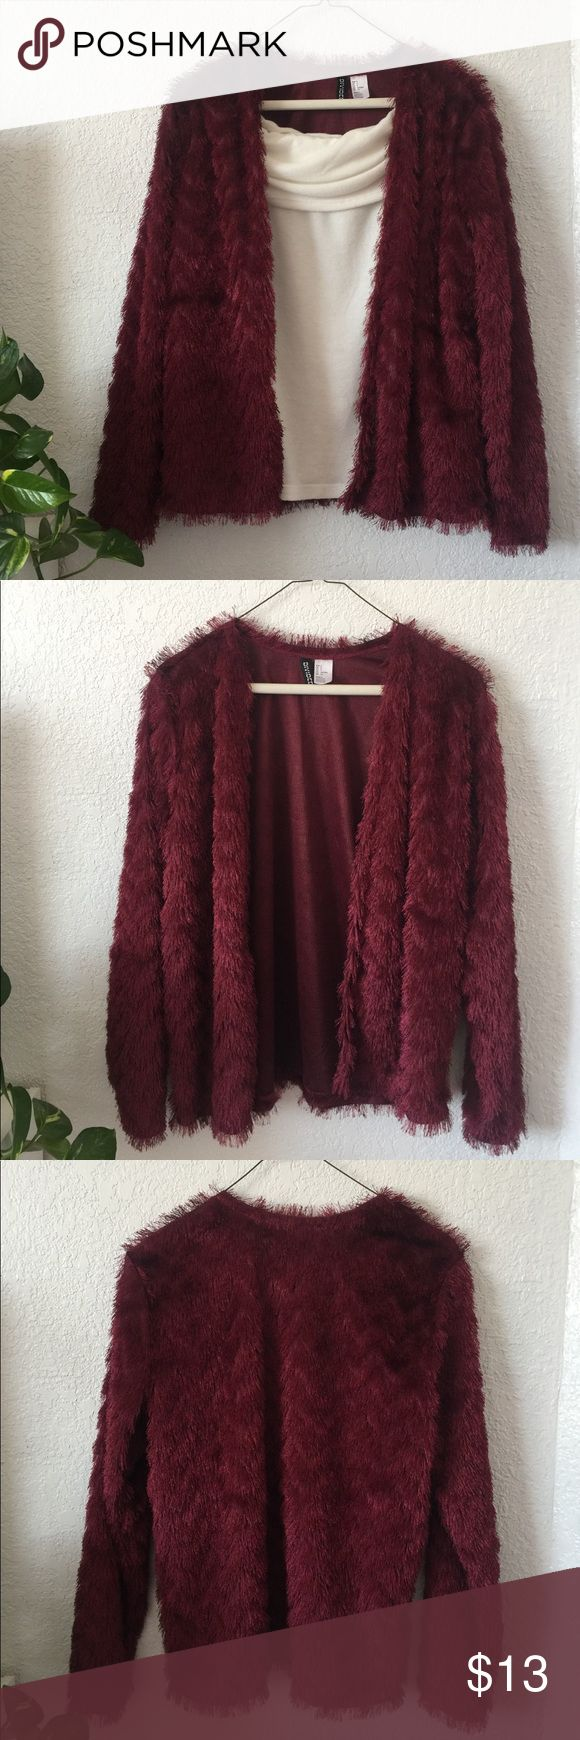 H&M Wine Fringe Coat Fringe coat, used a couple of times like new! It's not cotton so it's not warm, it can be used over a warm top during this weather. Perfect for New Years parties or 1920's inspired parties!    Size is small but it's a little bigger so it can fit a medium  Very glamorous ✨ Divided Jackets & Coats